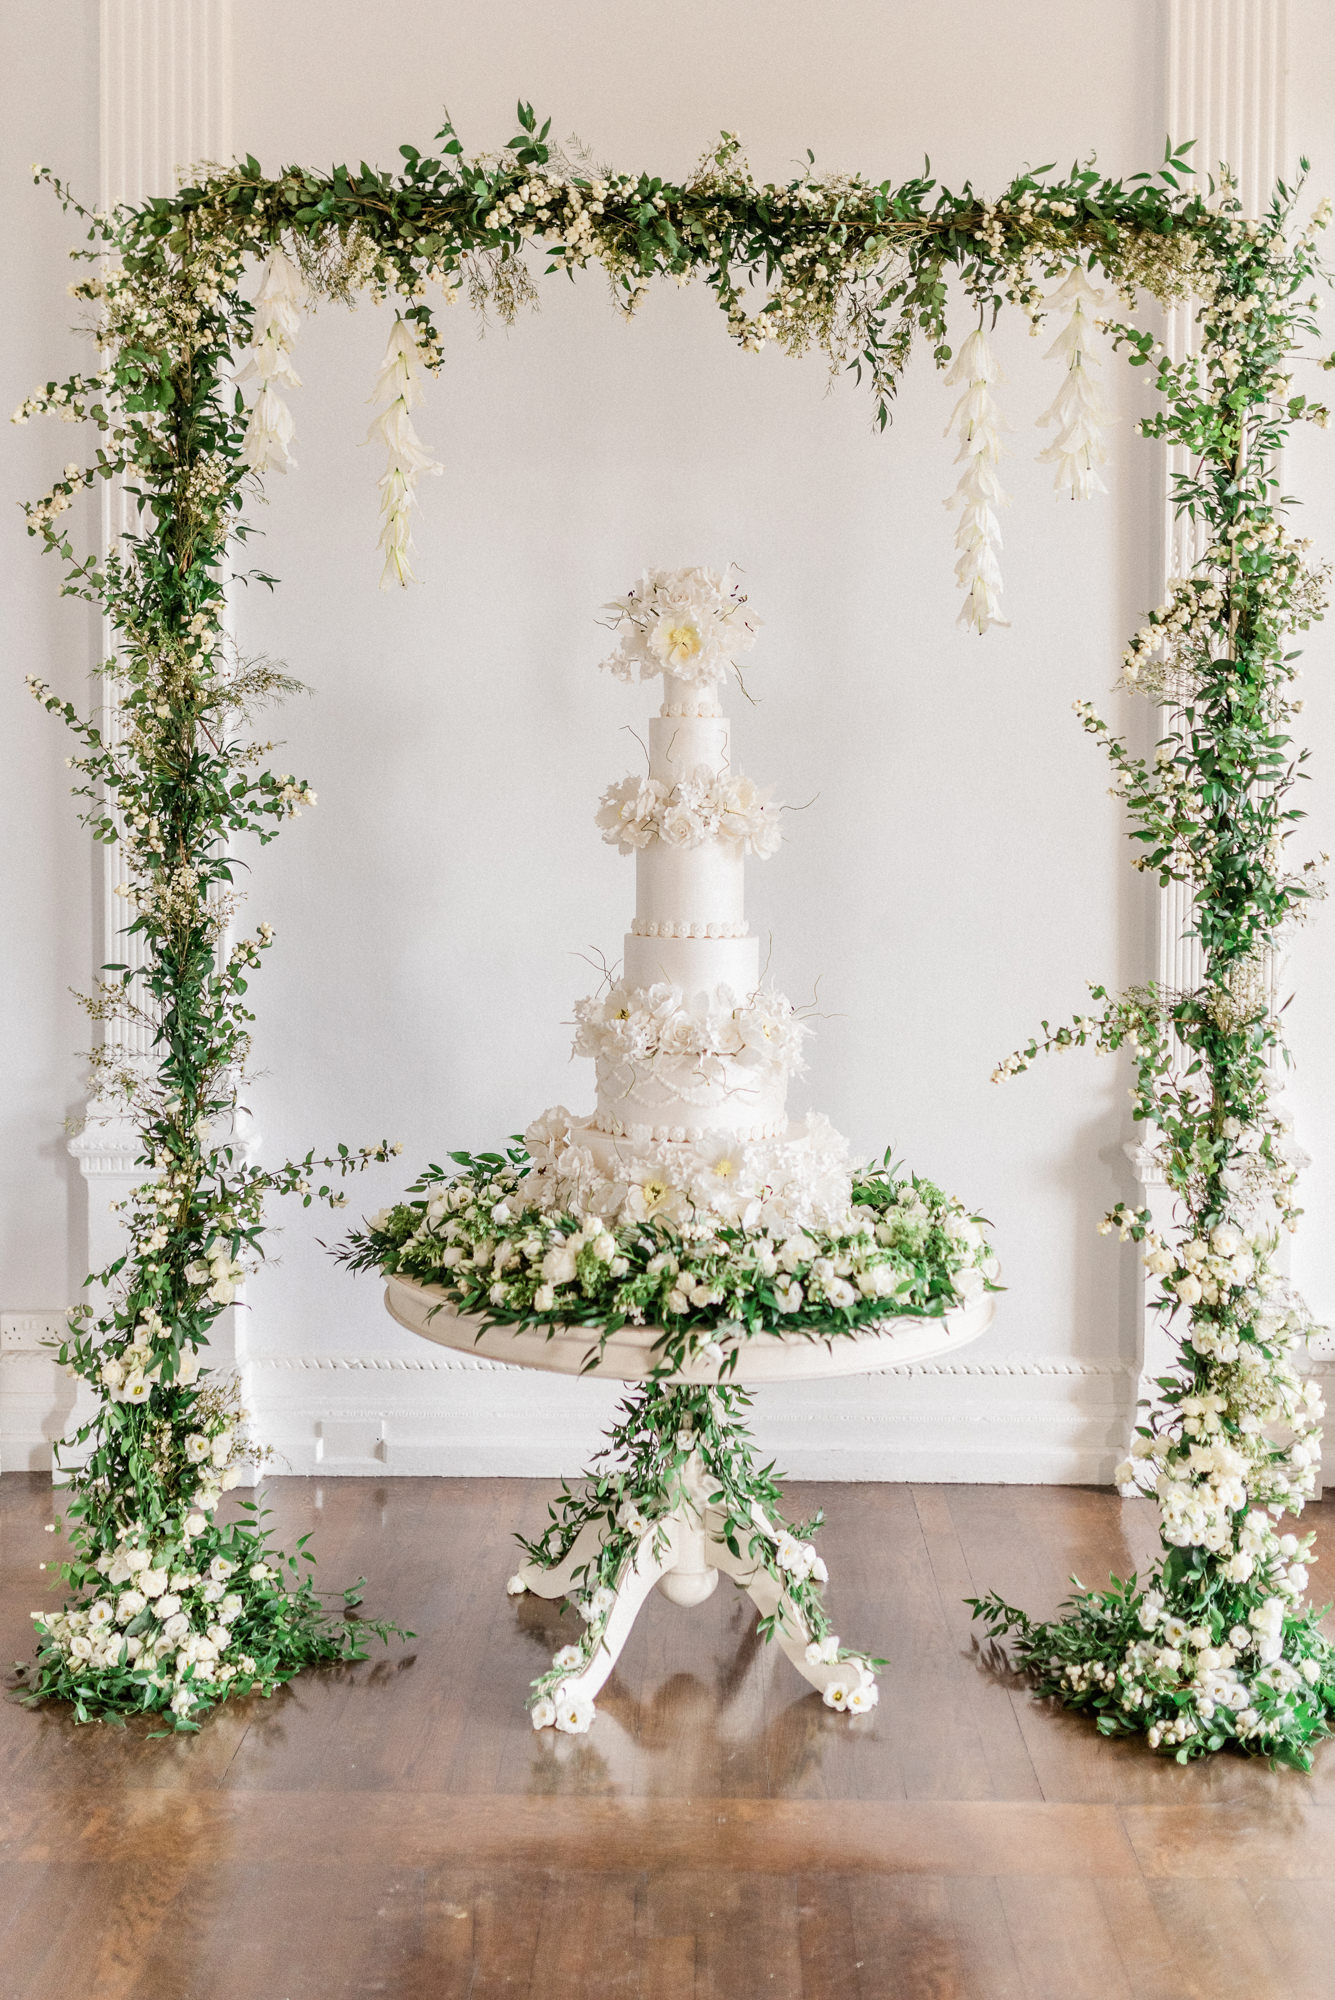 Six tierd fondant cake with white roses - photo by Gianluca Adovasio Photography